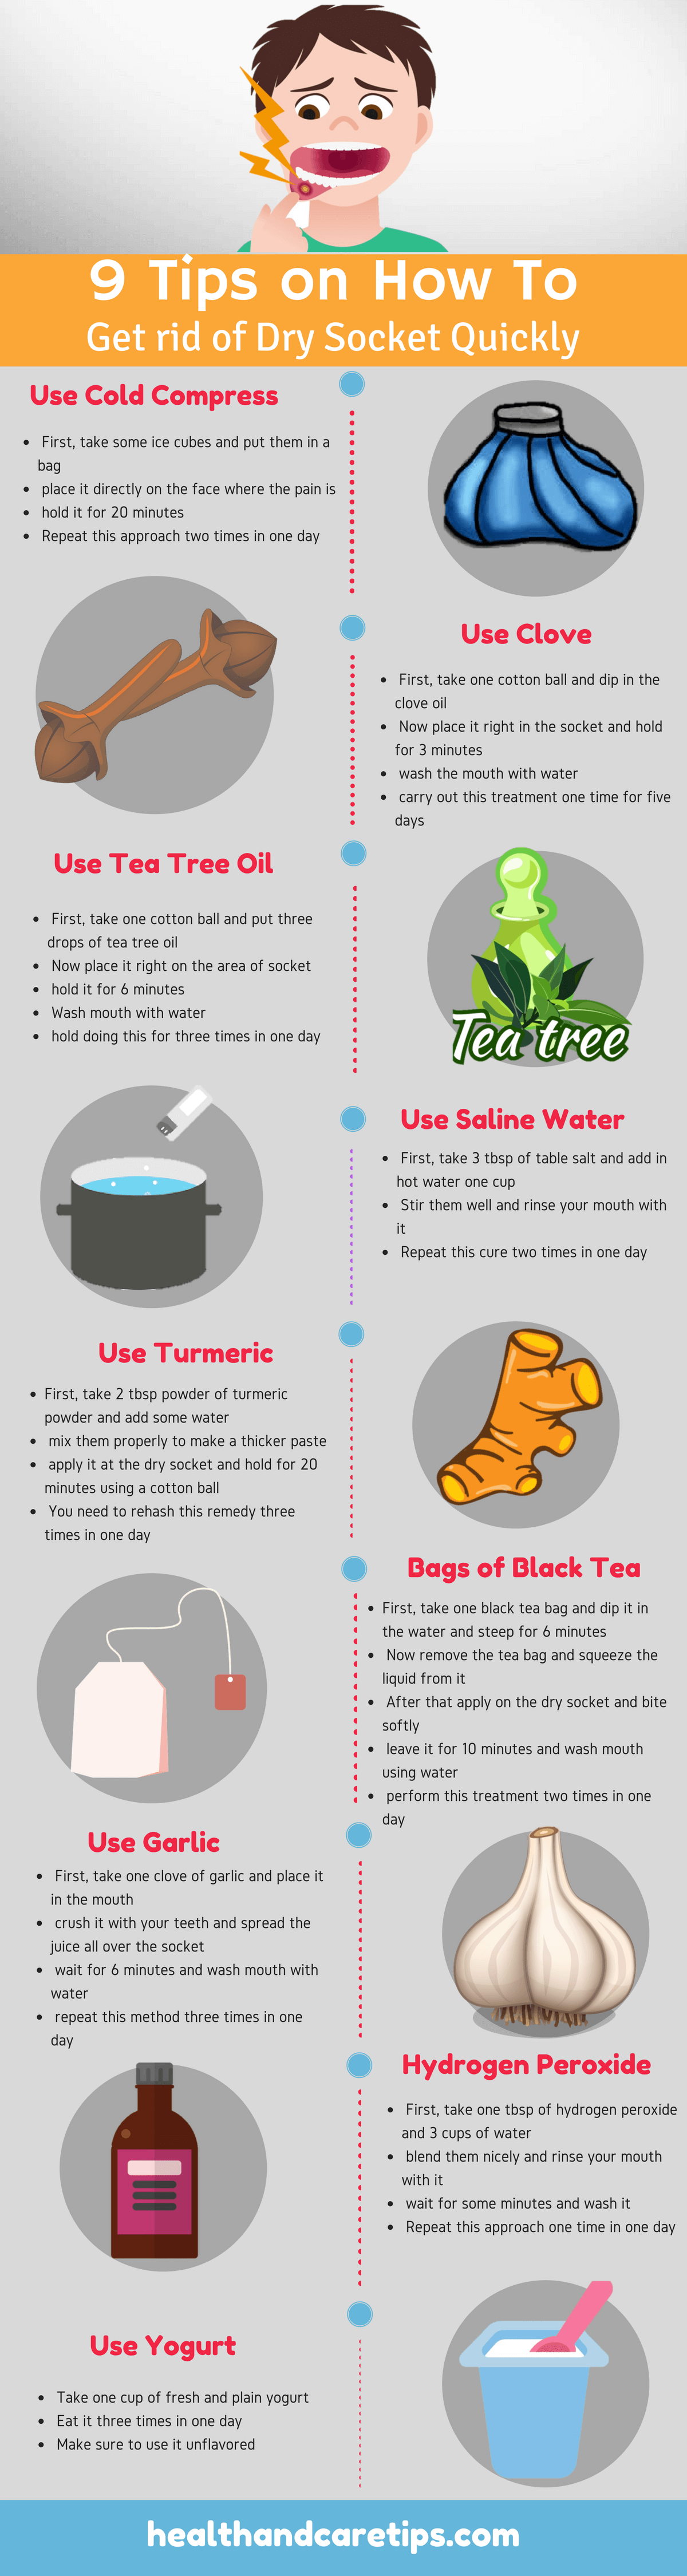 9 Diy Home Remedies For Dry Socket To Treat It Quickly Top 9